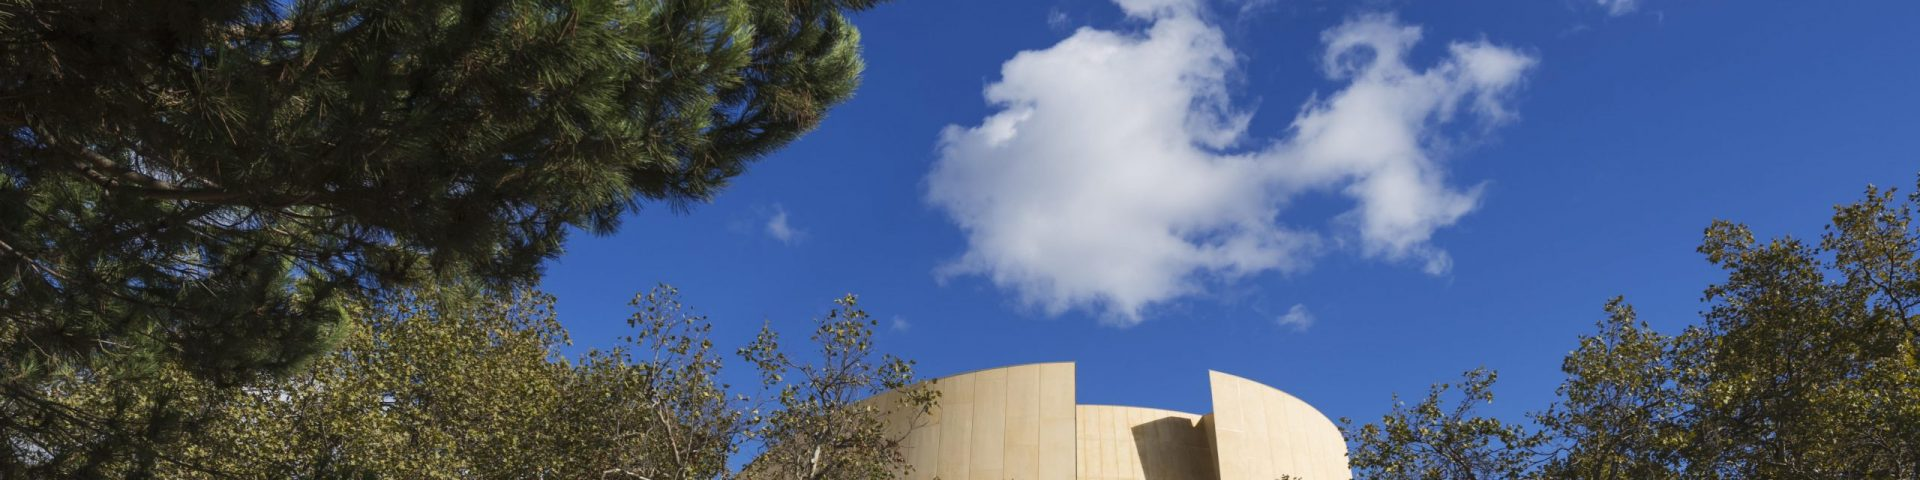 Bing Concert Hall, Stanford University, Stanford, California,